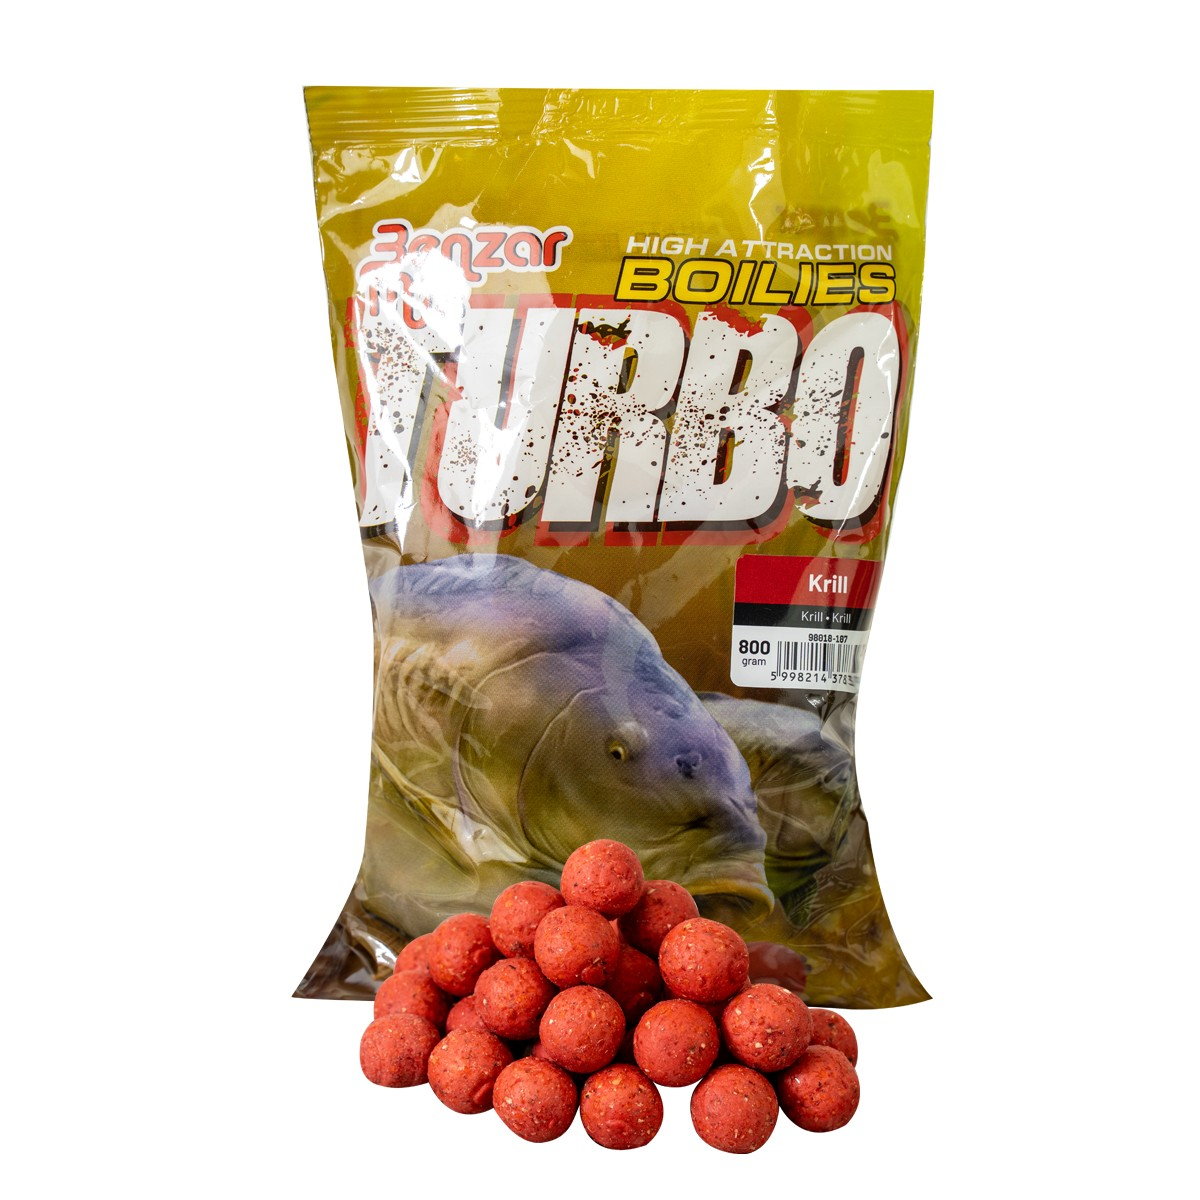 BENZAR TURBO BOILIE 800G 24MM KRILL